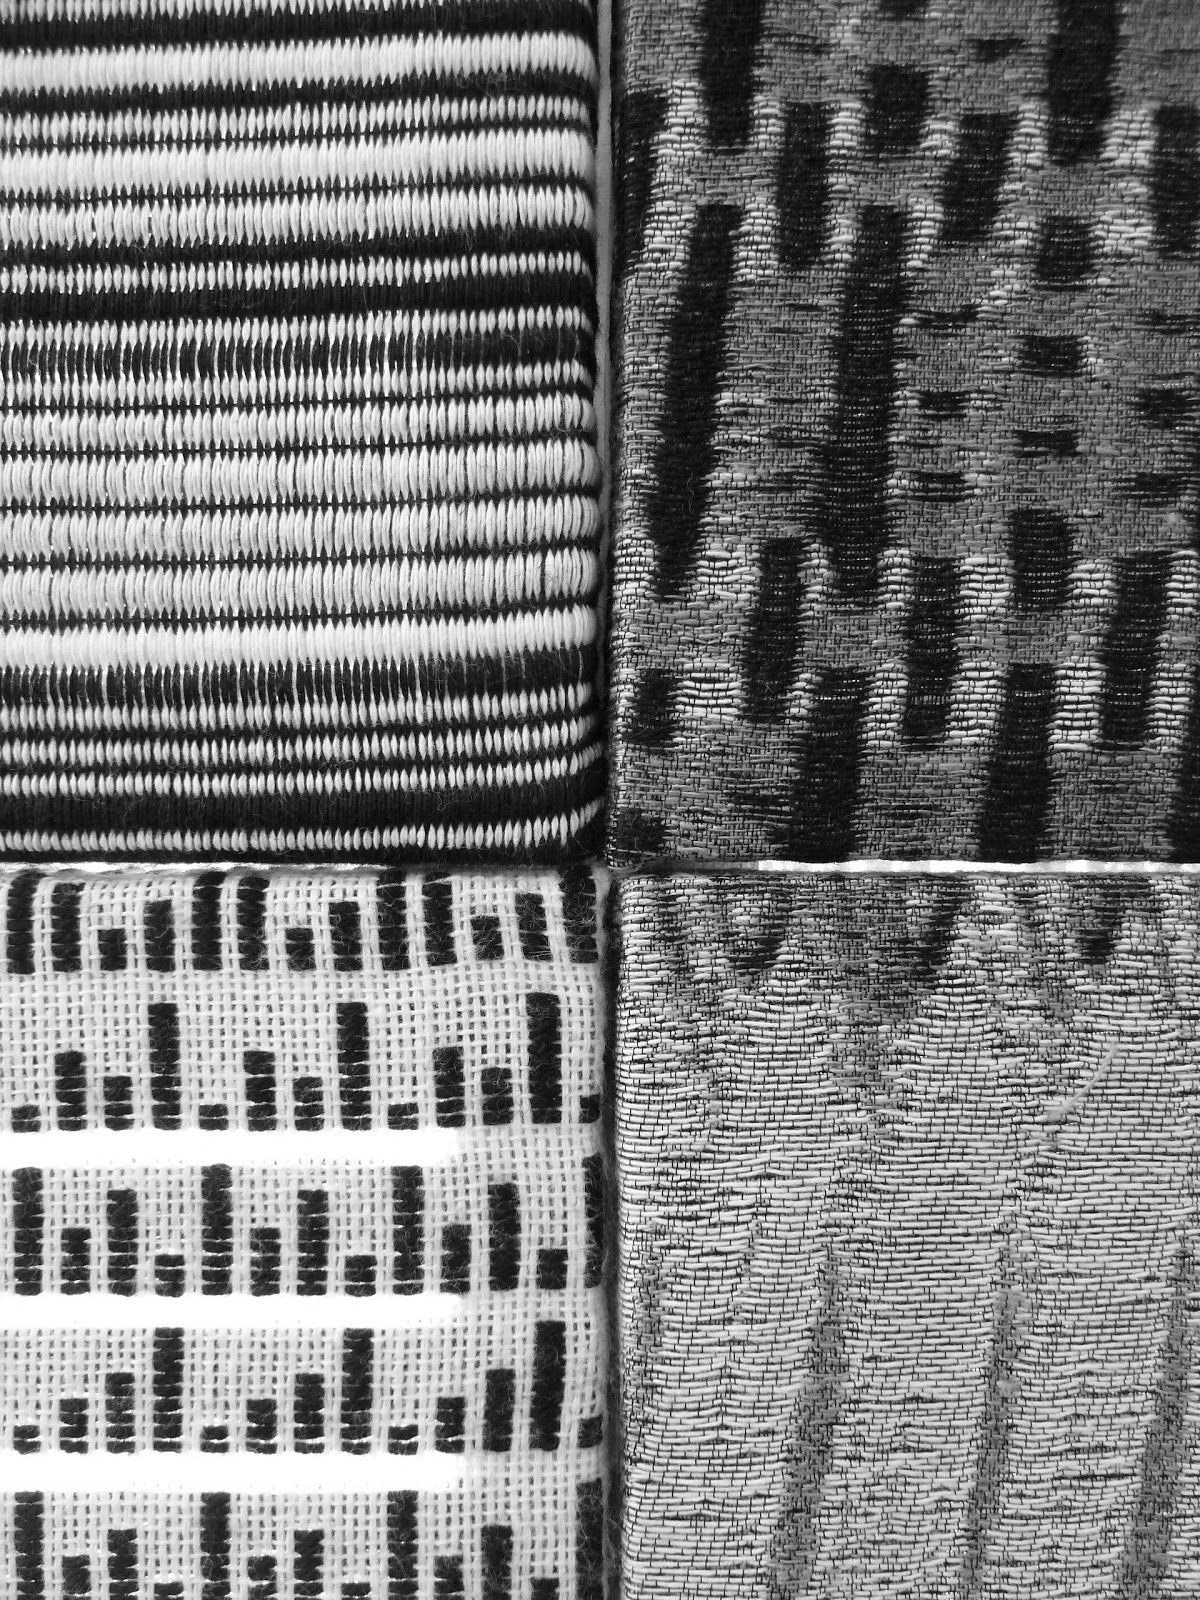 Modern monochrome weaving with graphic patterns; woven textiles ...